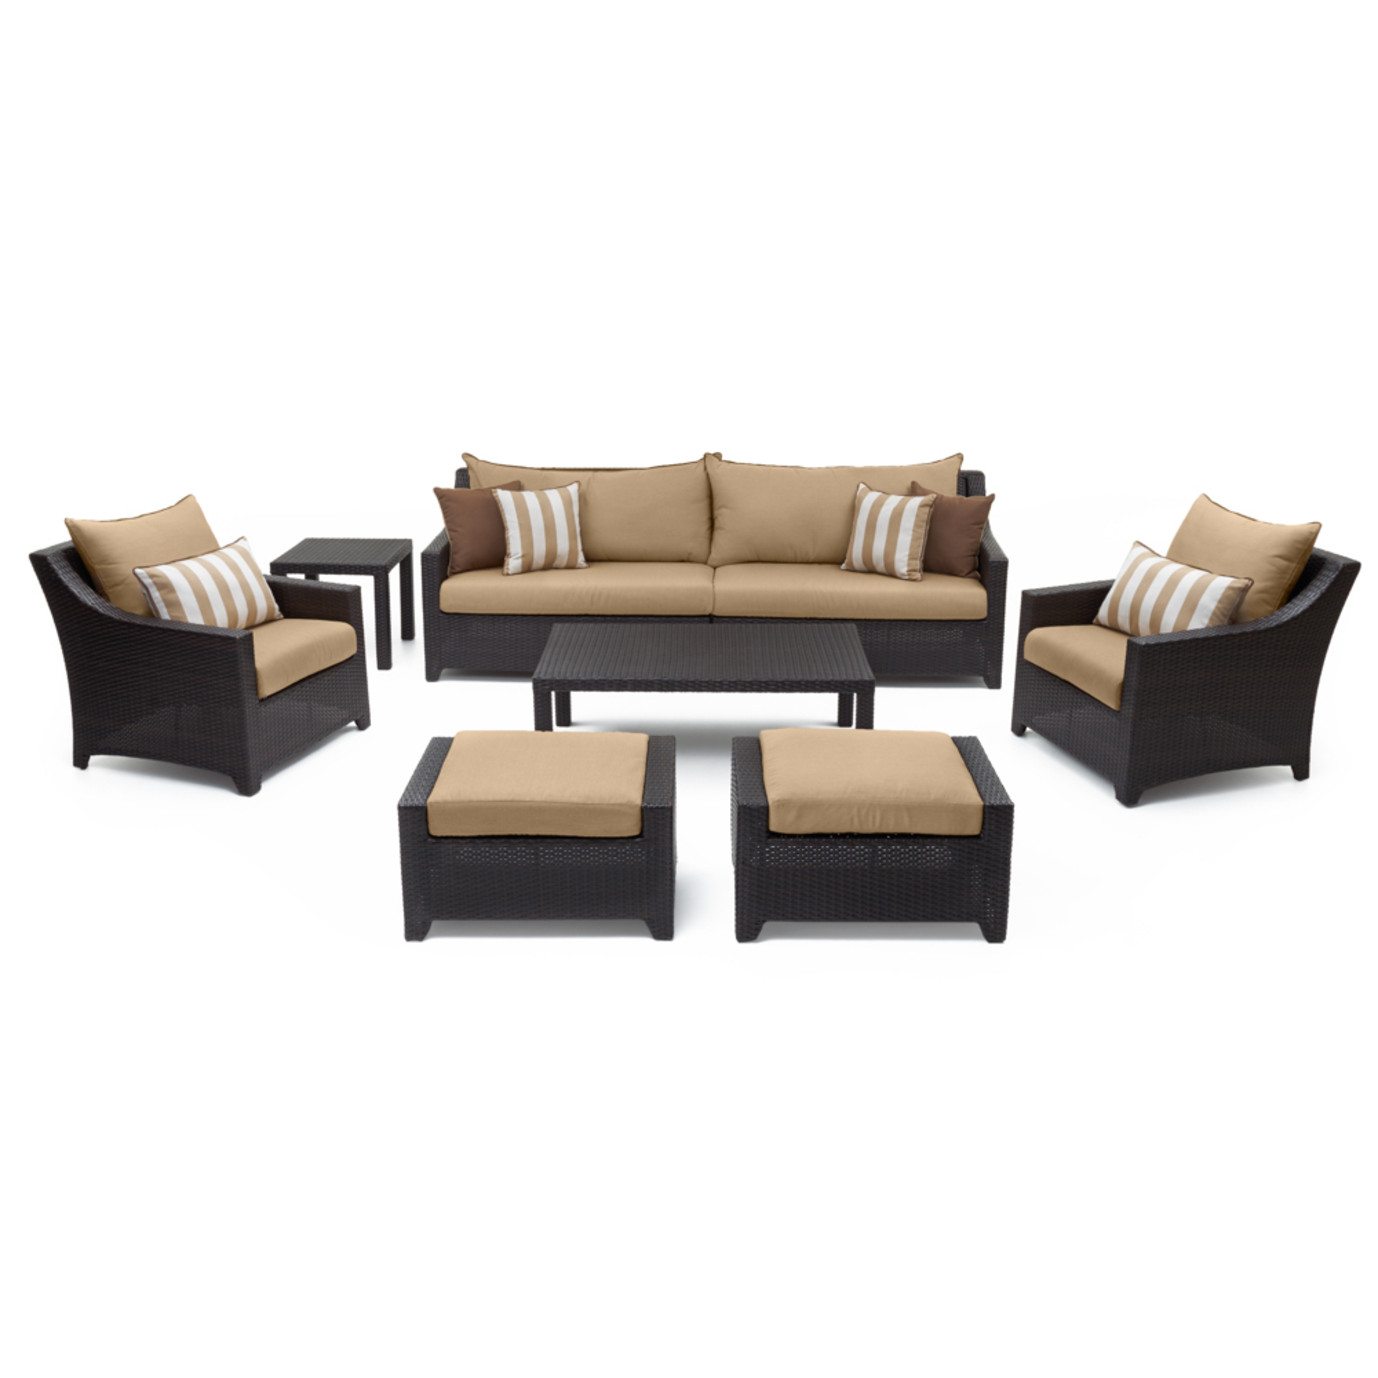 Deco™ 8 Piece Sofa & Club Chair Set - Maxim Beige